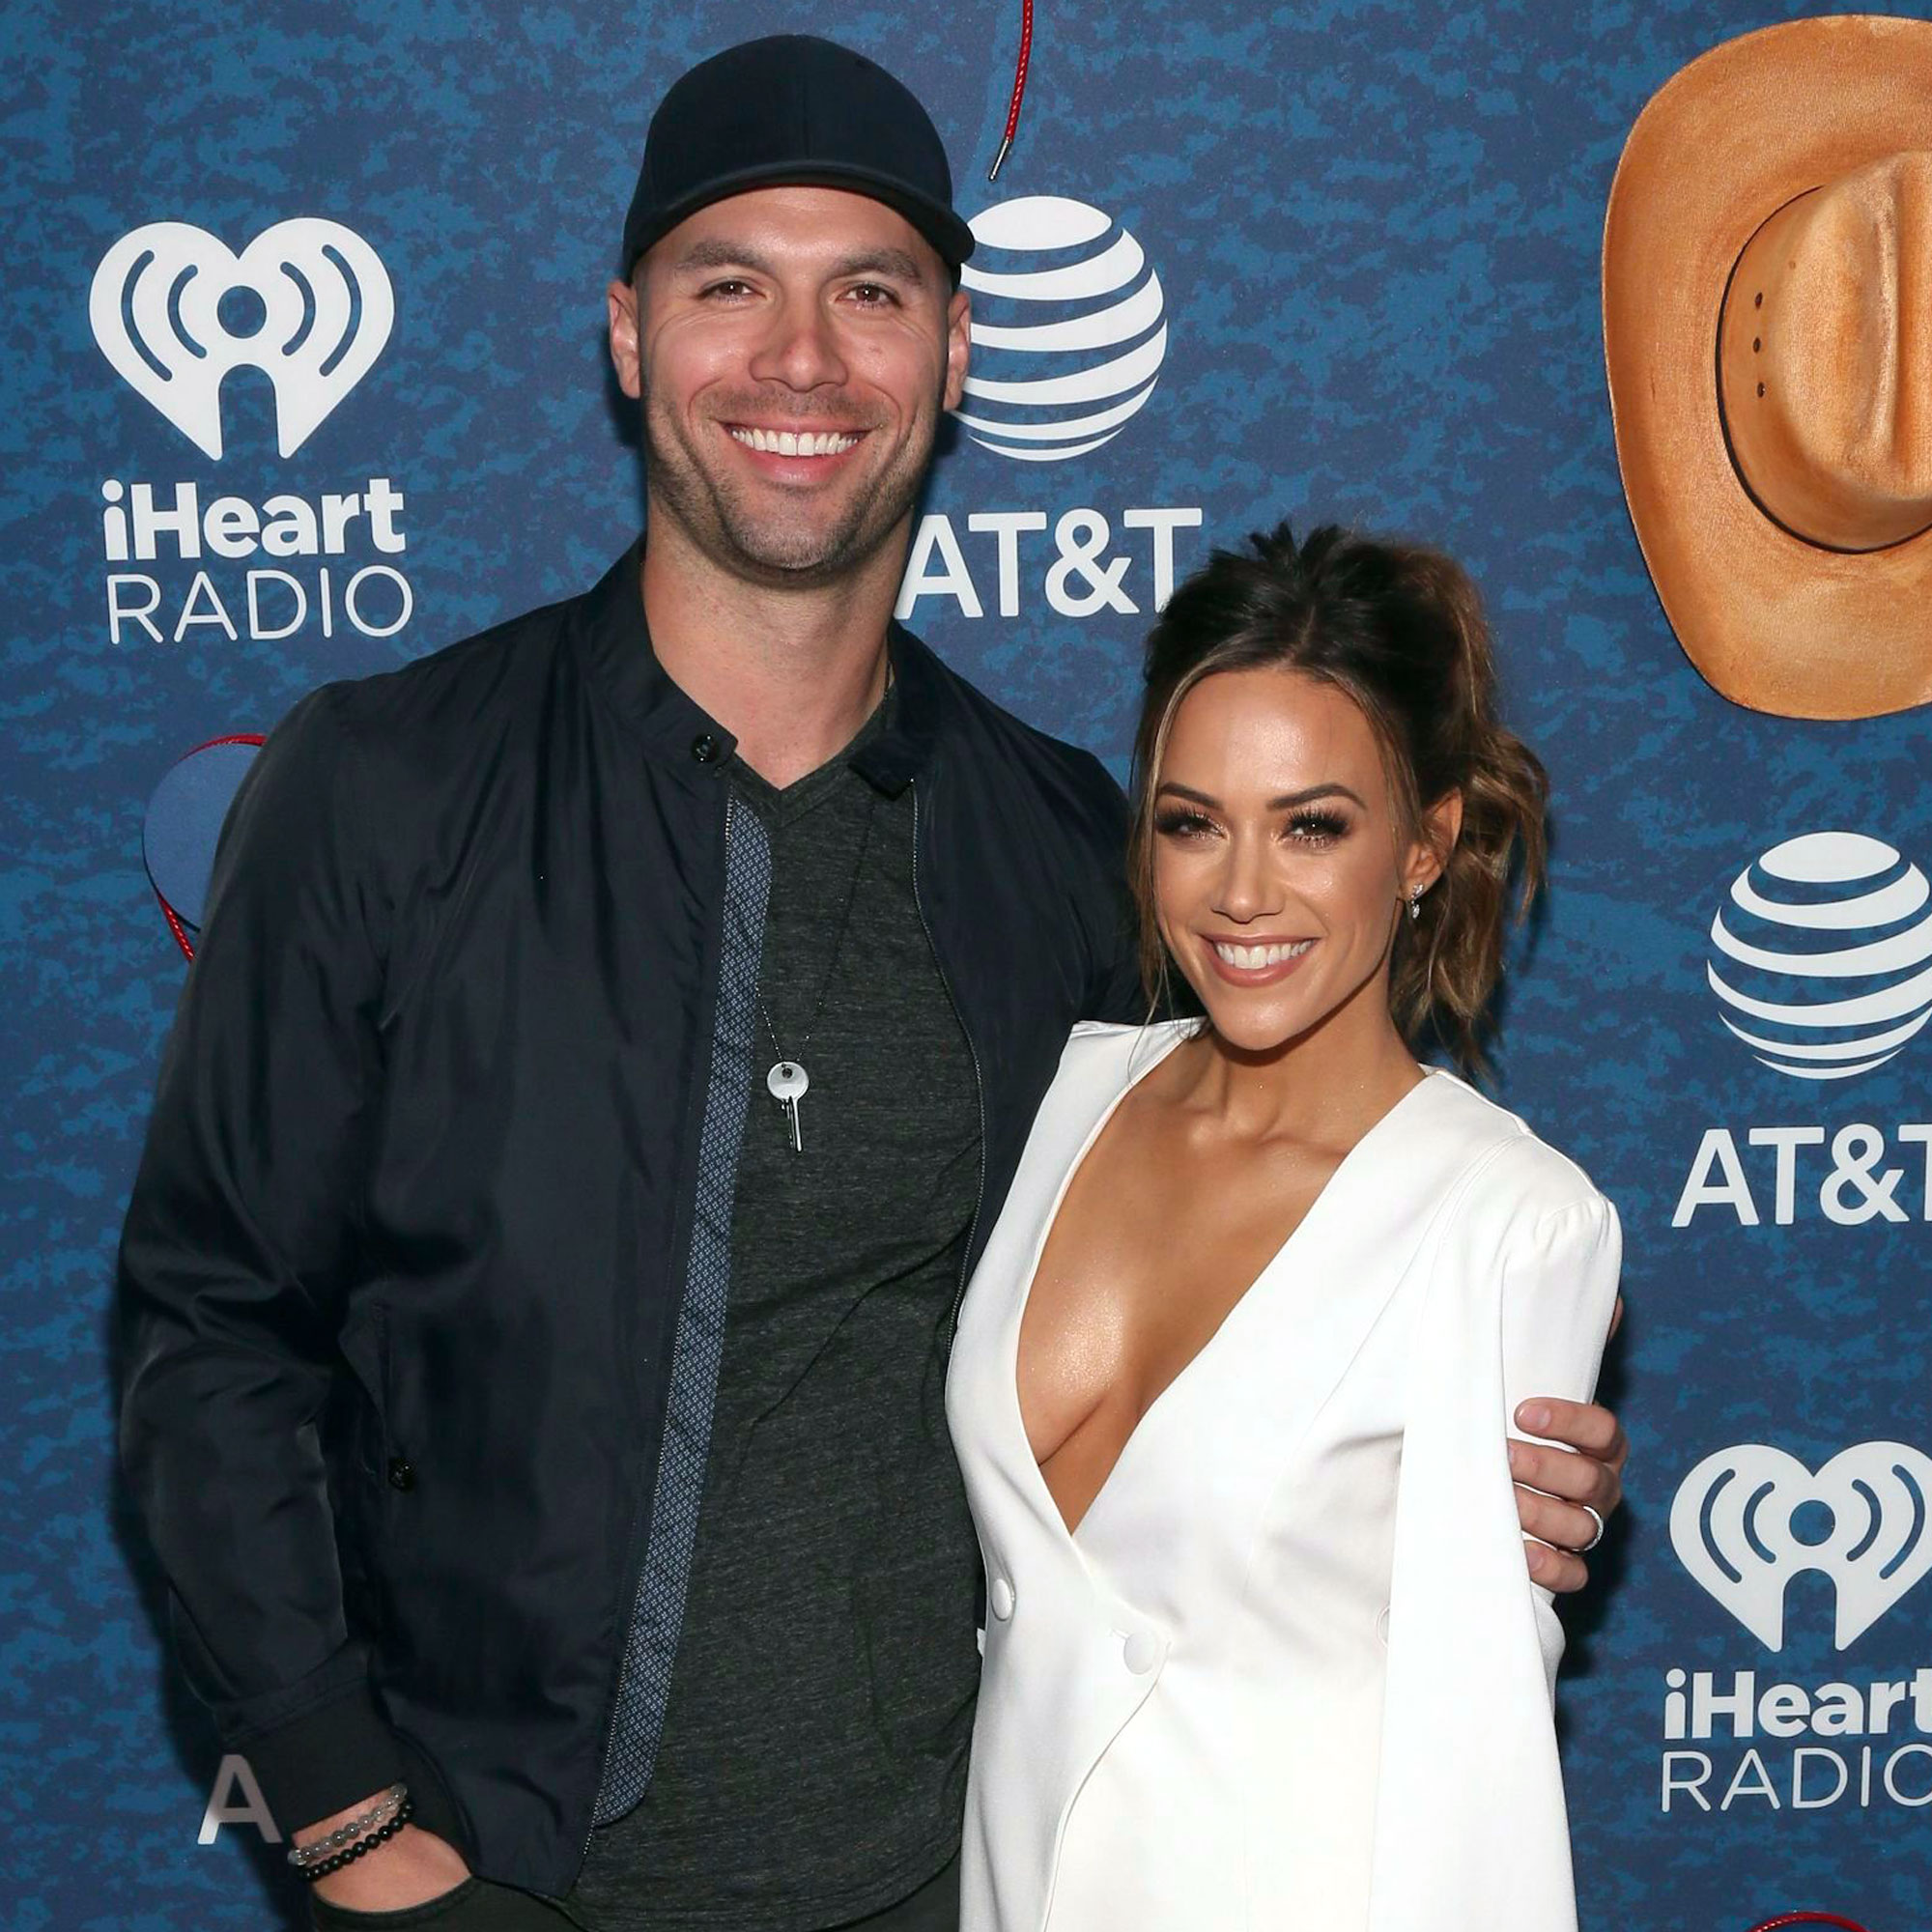 Jana Kramer Admits She 'Didn't Want to Go Out' After Finding Woman's Topless Photo in Mike Caussin's Texts